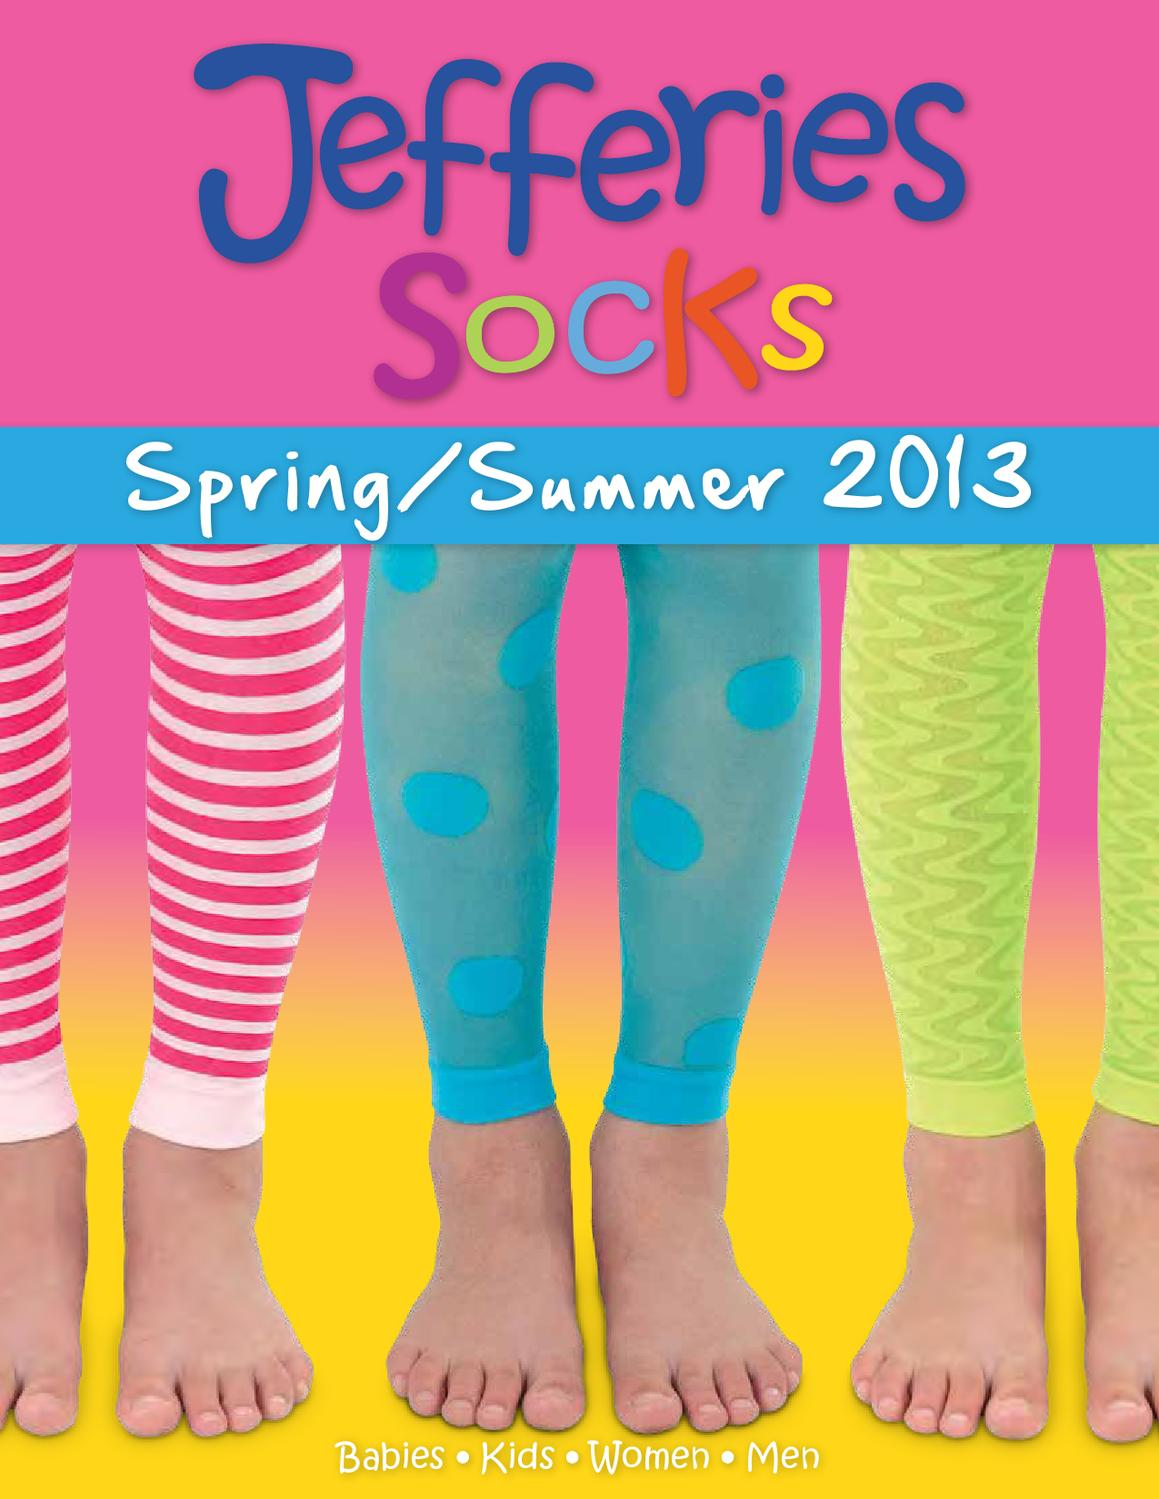 JEFFERIES Ankle Socks SEAMLESS Cotton Blend NB-10 YRS Ripple Edge Trim Colors